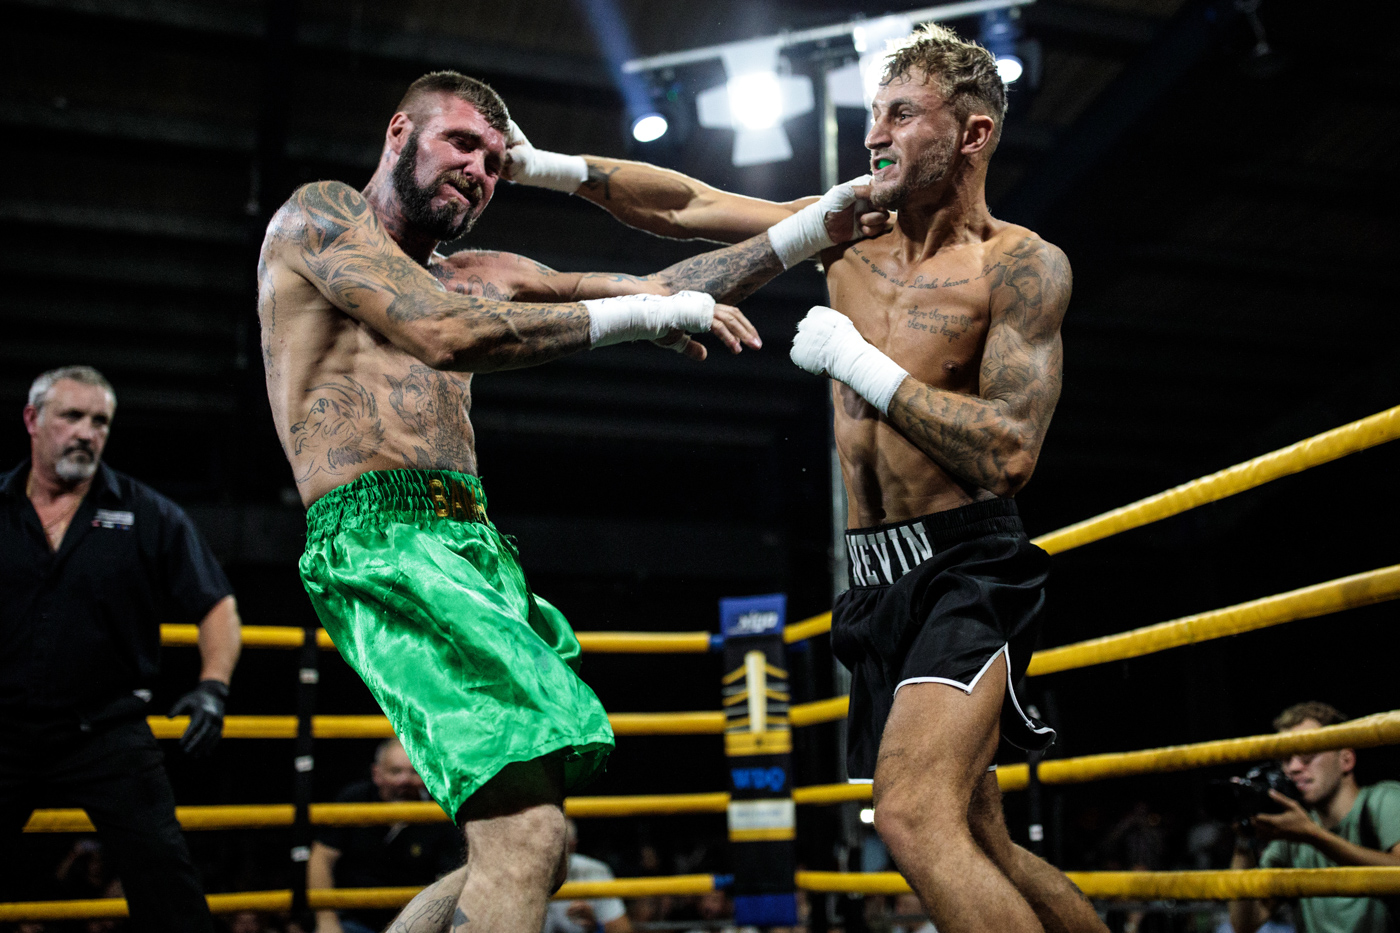 MANCHESTER, ENGLAND: Jay 'BamBam' Eggleston, 35 from Sheffield (L) fights Luke Nevin, 22 from Newcastle (R) during an Ultimate Bare Knuckle Boxing (UBKB) event at Bowlers Exhibition Centre on August 4, 2018.